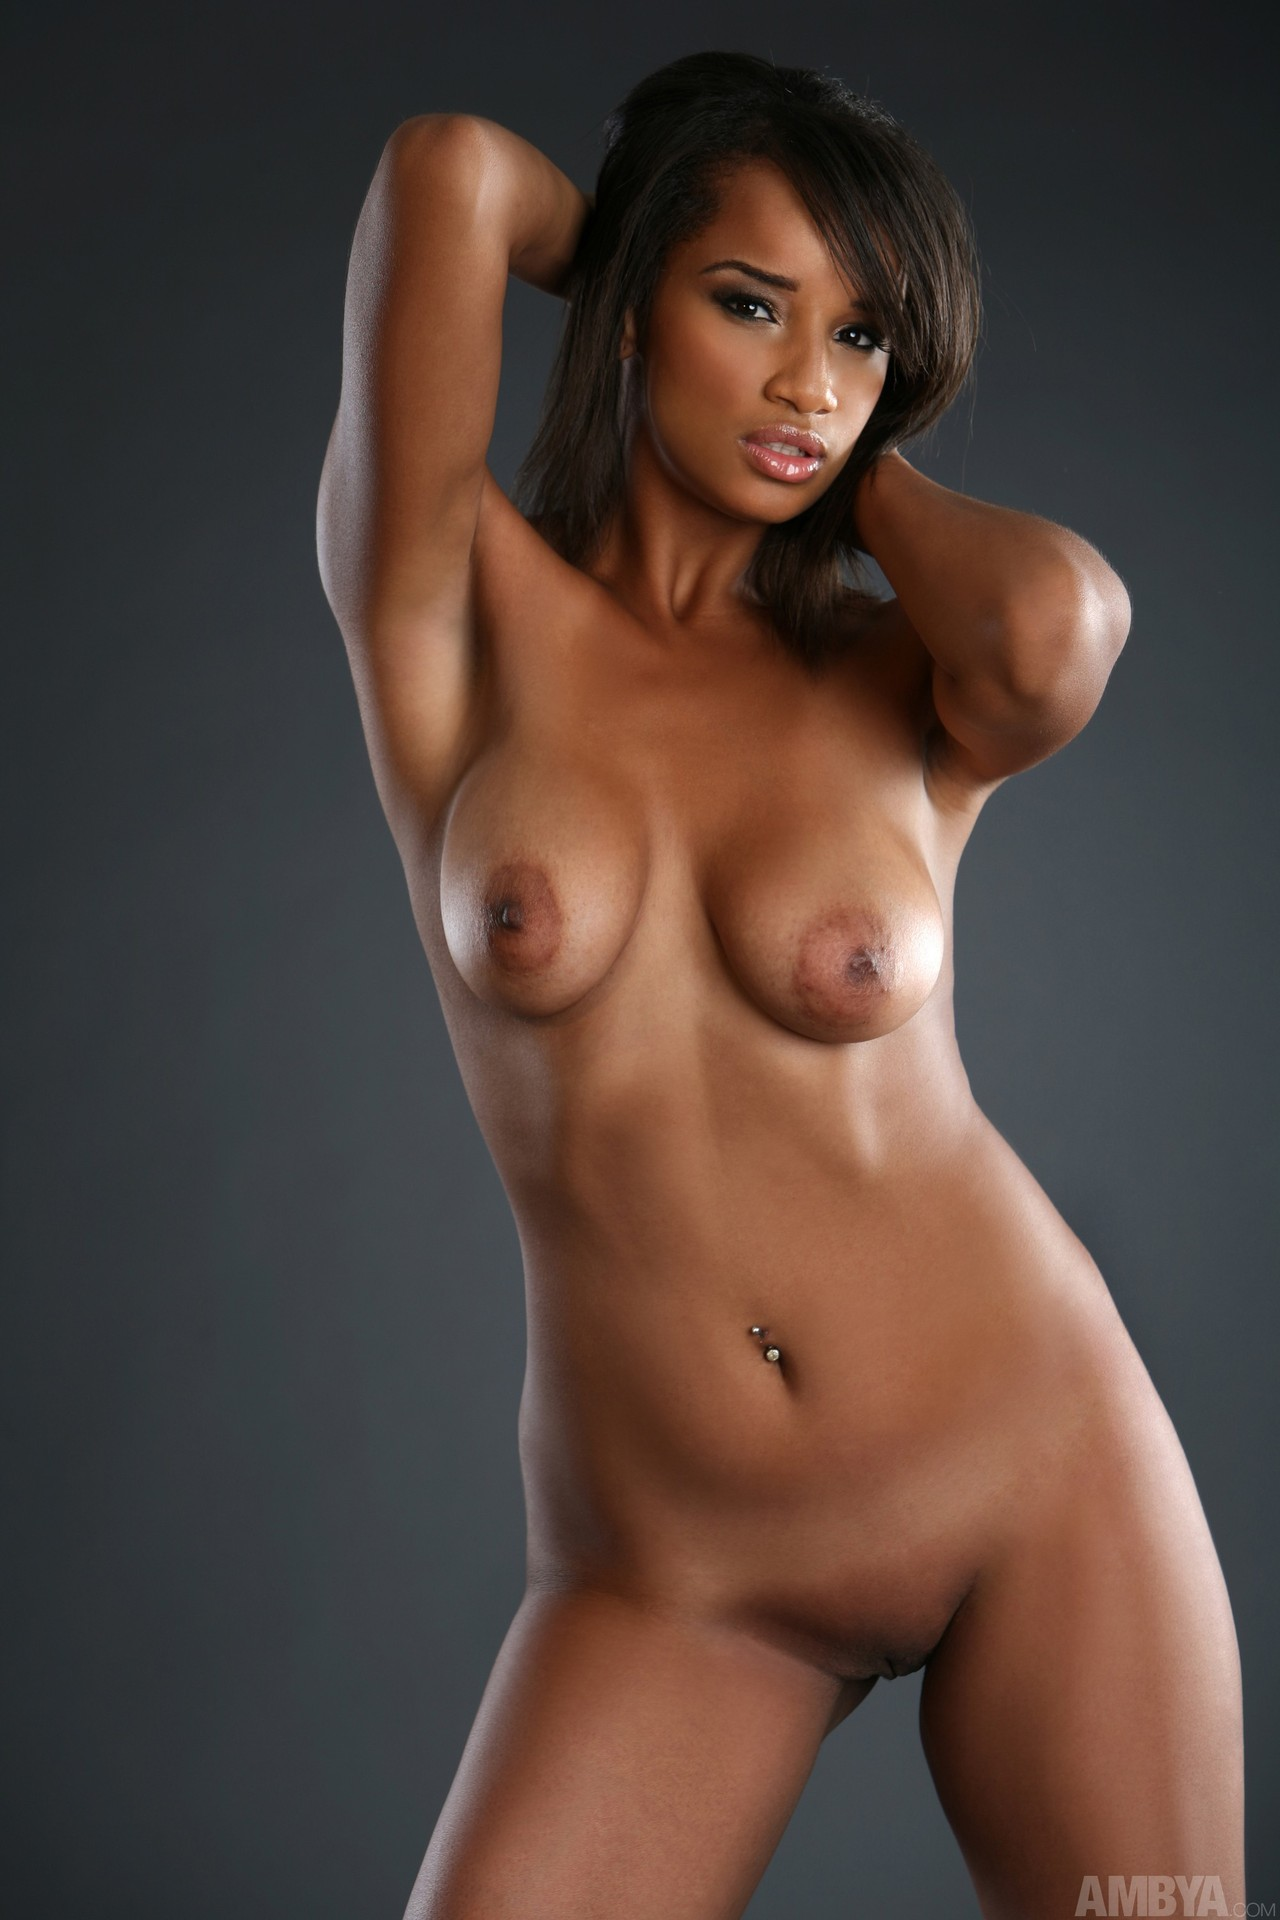 Ebony Girls Pics - Official Site